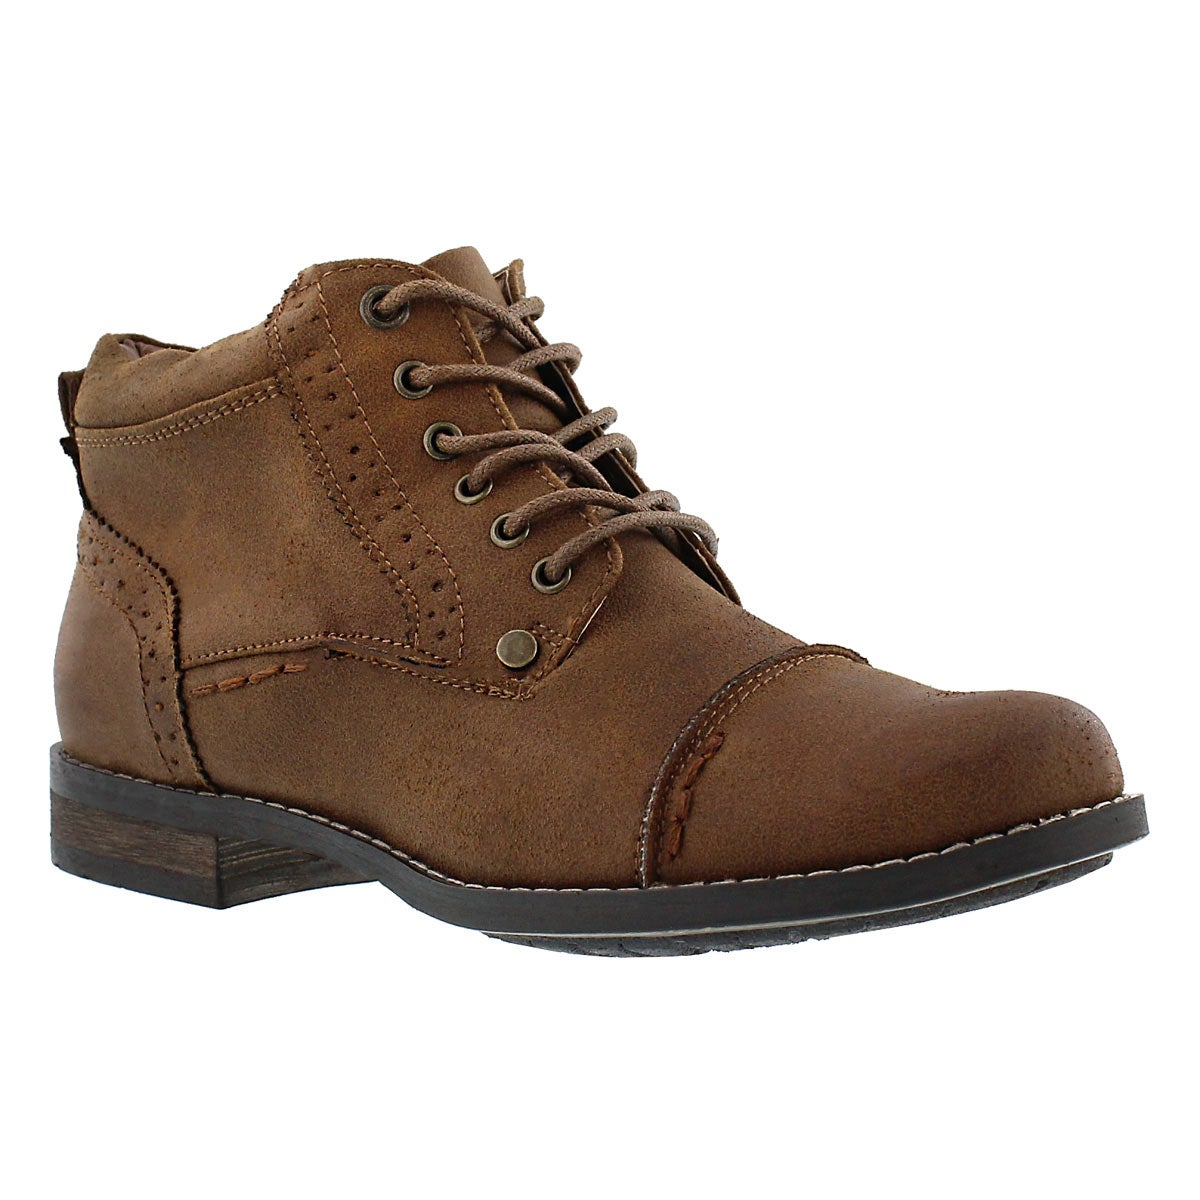 SoftMoc Women's BELICIA II brown lace up ankle boots